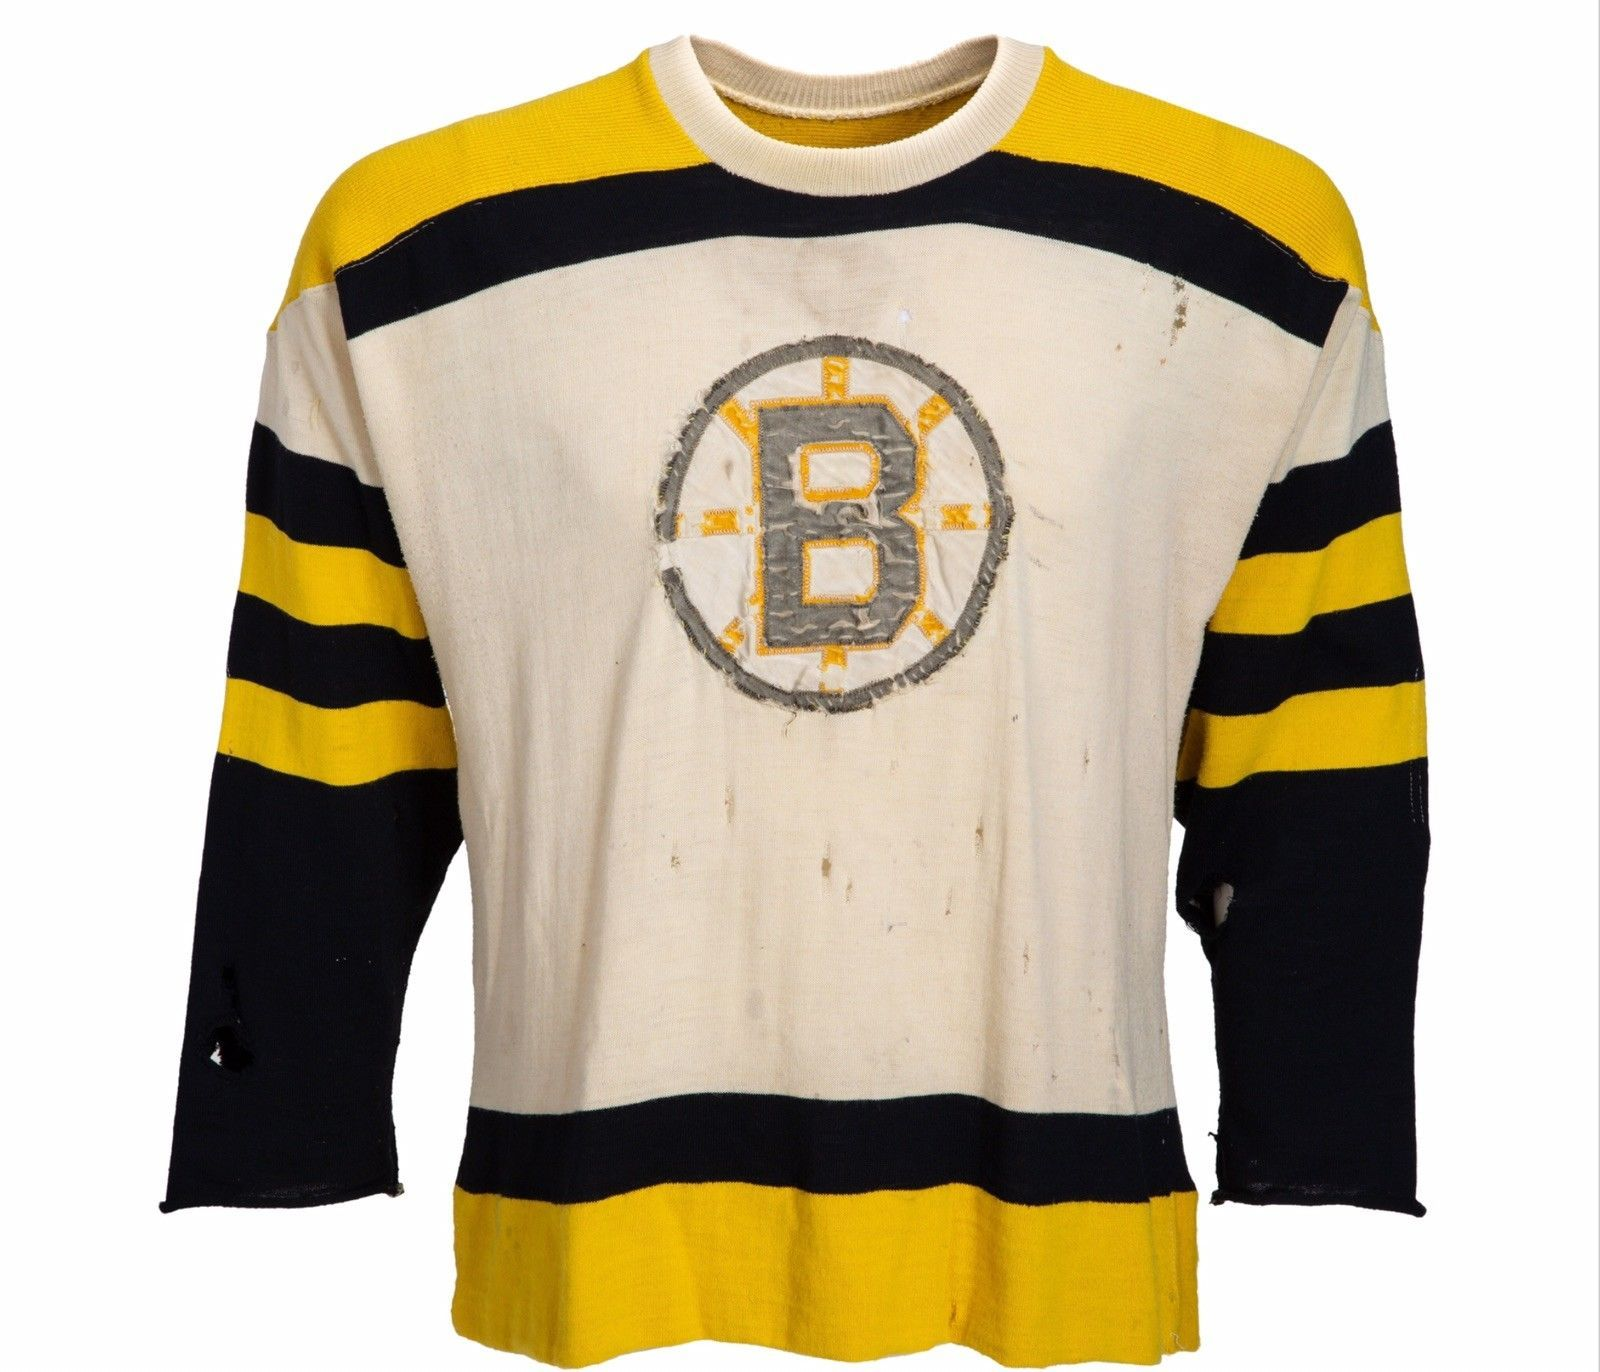 low priced 35bf3 74246 Details about 1955-57 Game Worn Boston Bruins Wool Sweater ...